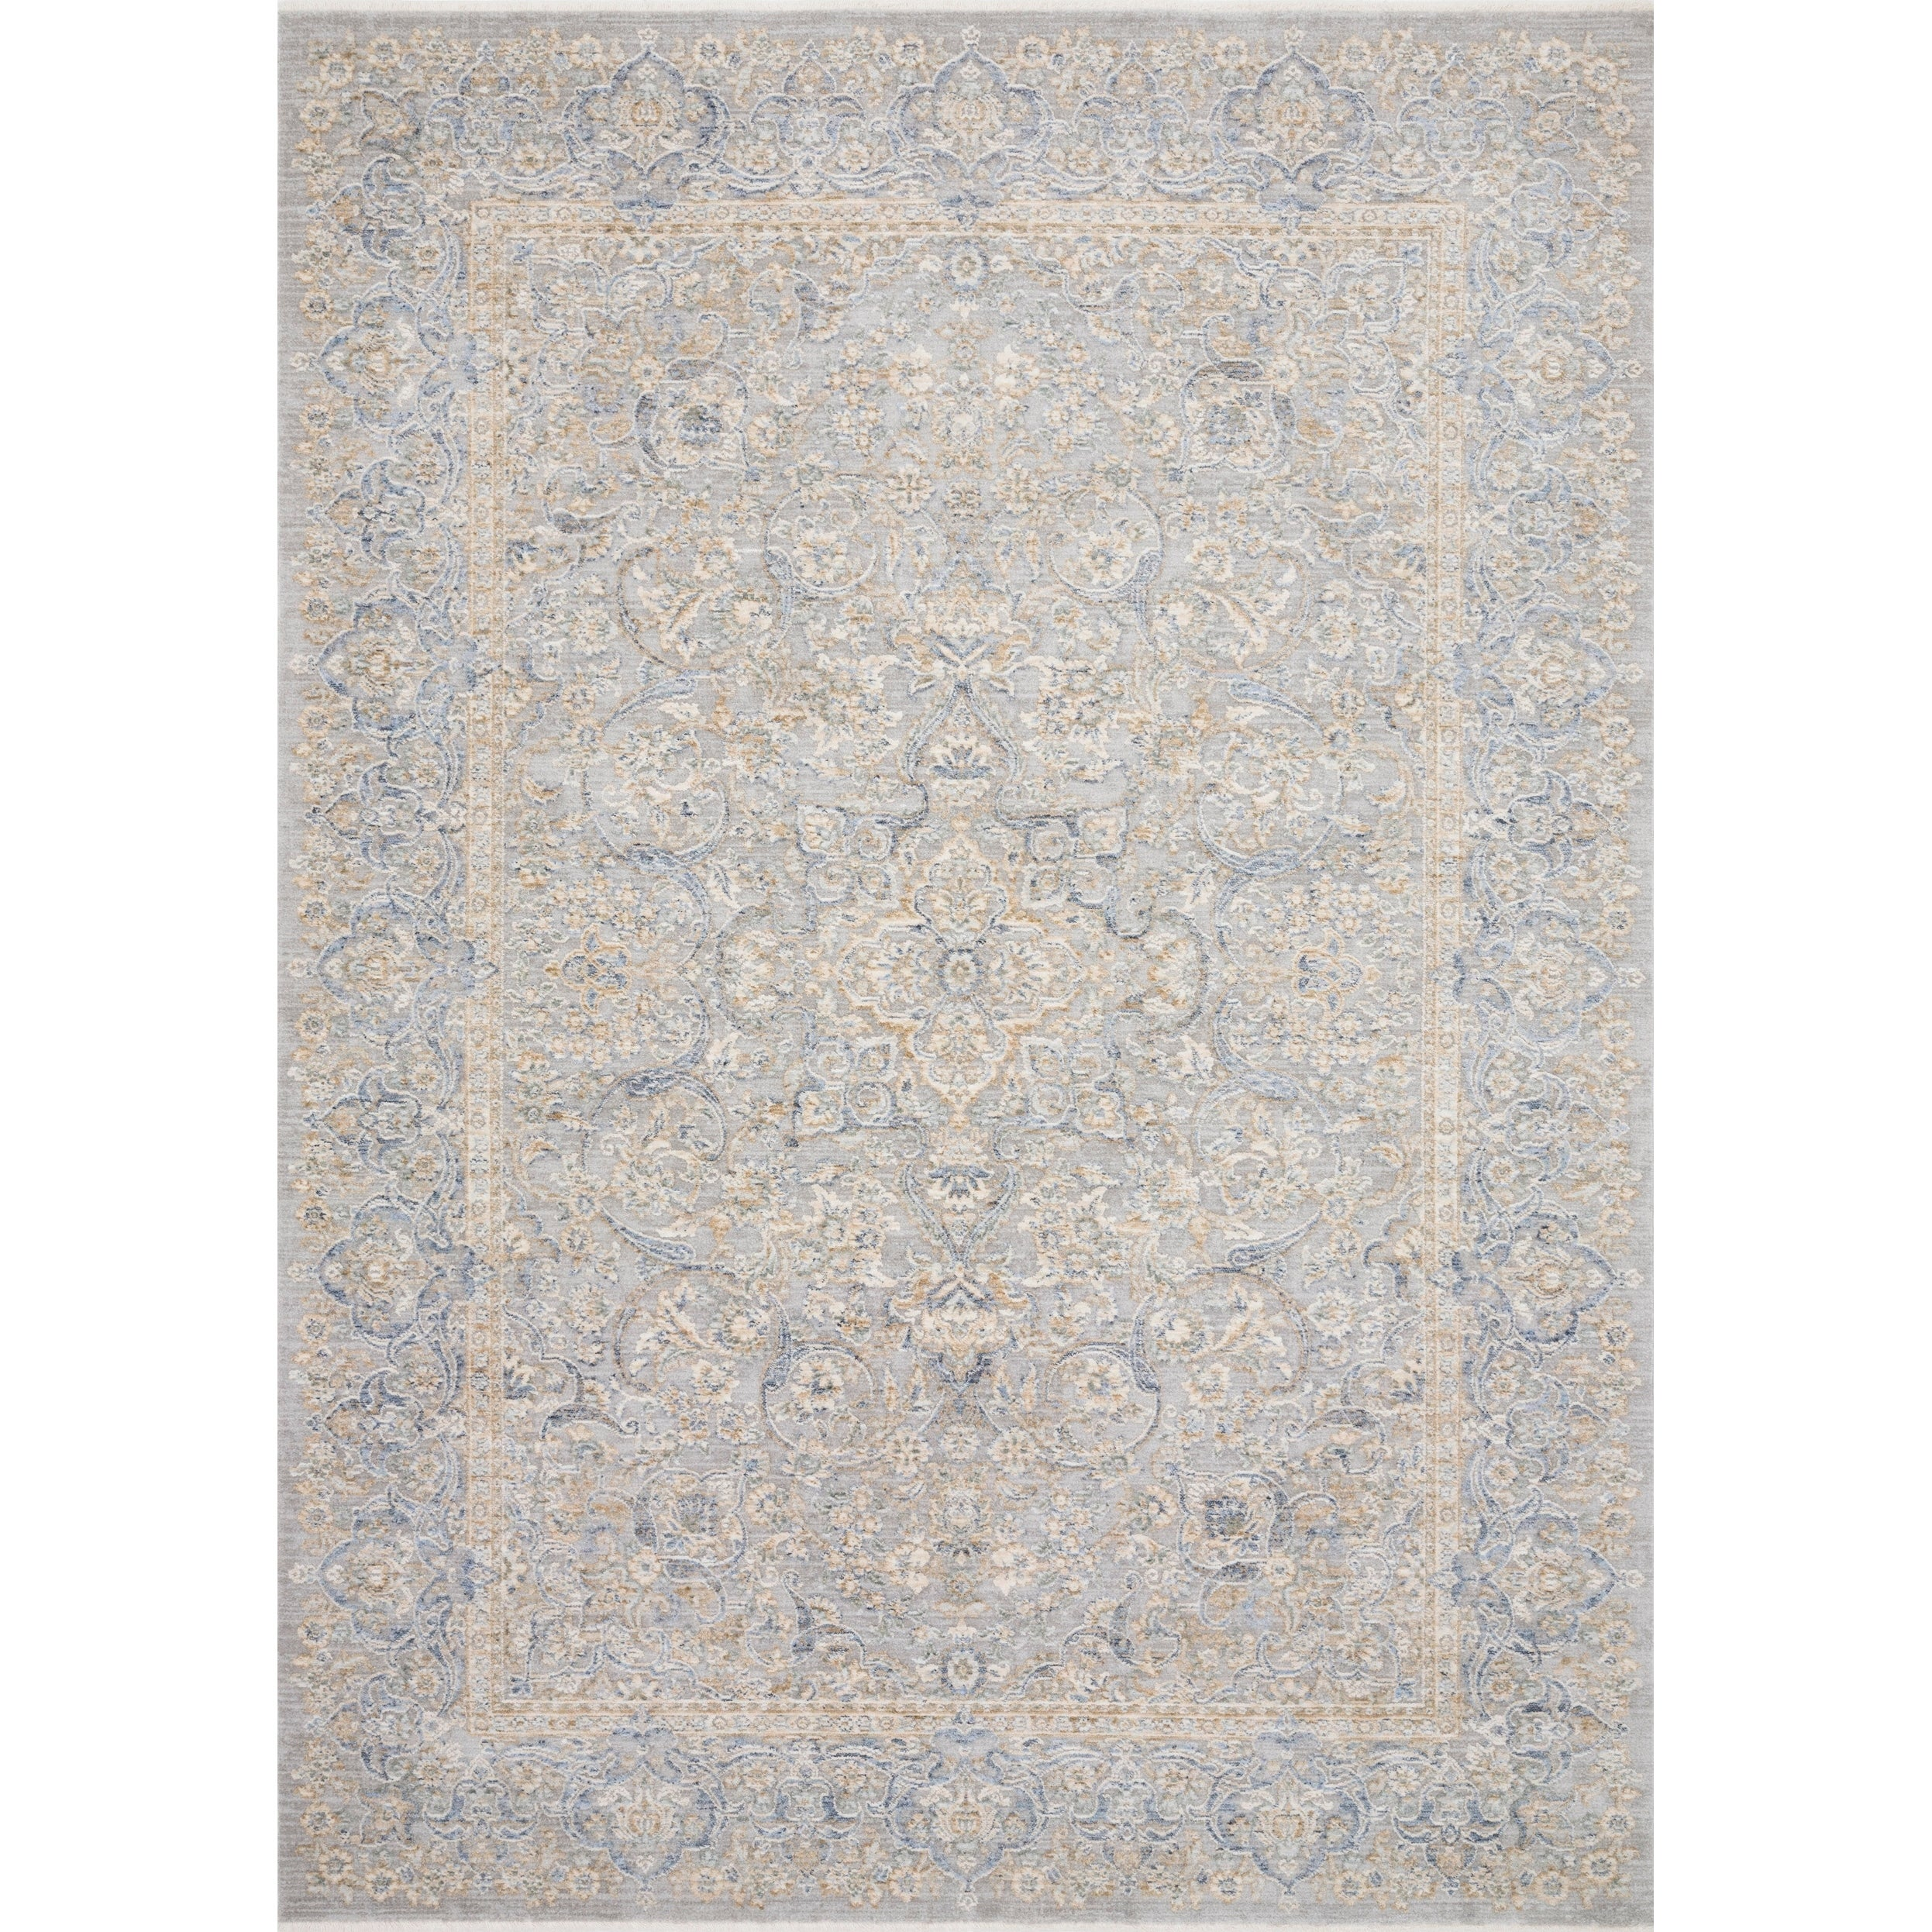 Classic Grey/ Gold Ornate Vintage Area Rug - 5 x 8 (Stone/Gold - 5 x 8)